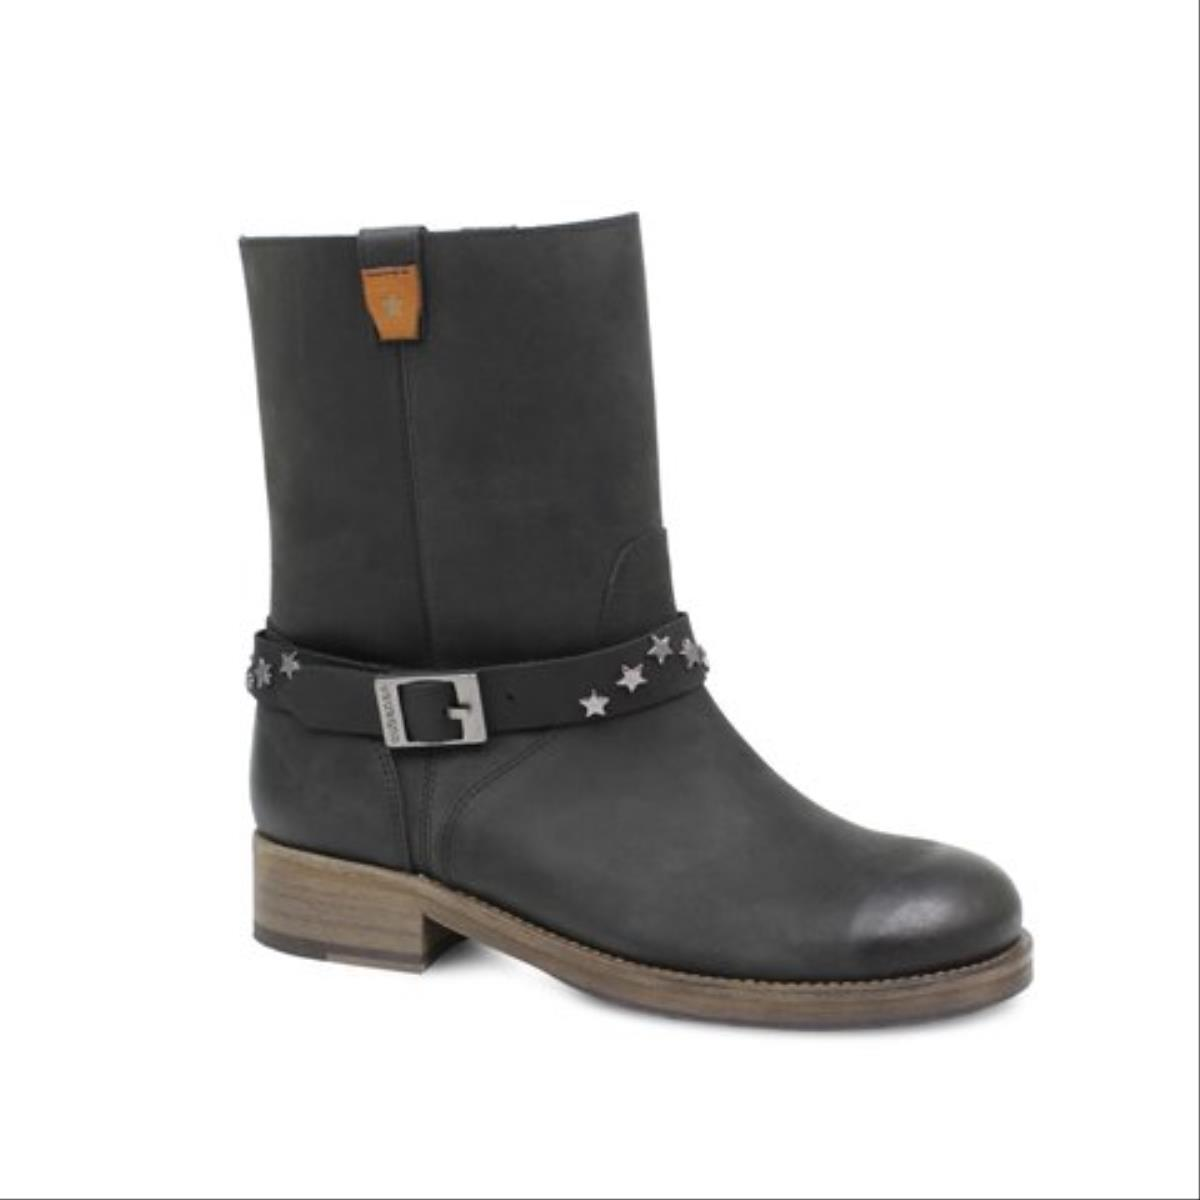 BOTA CUBANAS MUFFIN831 BLACK